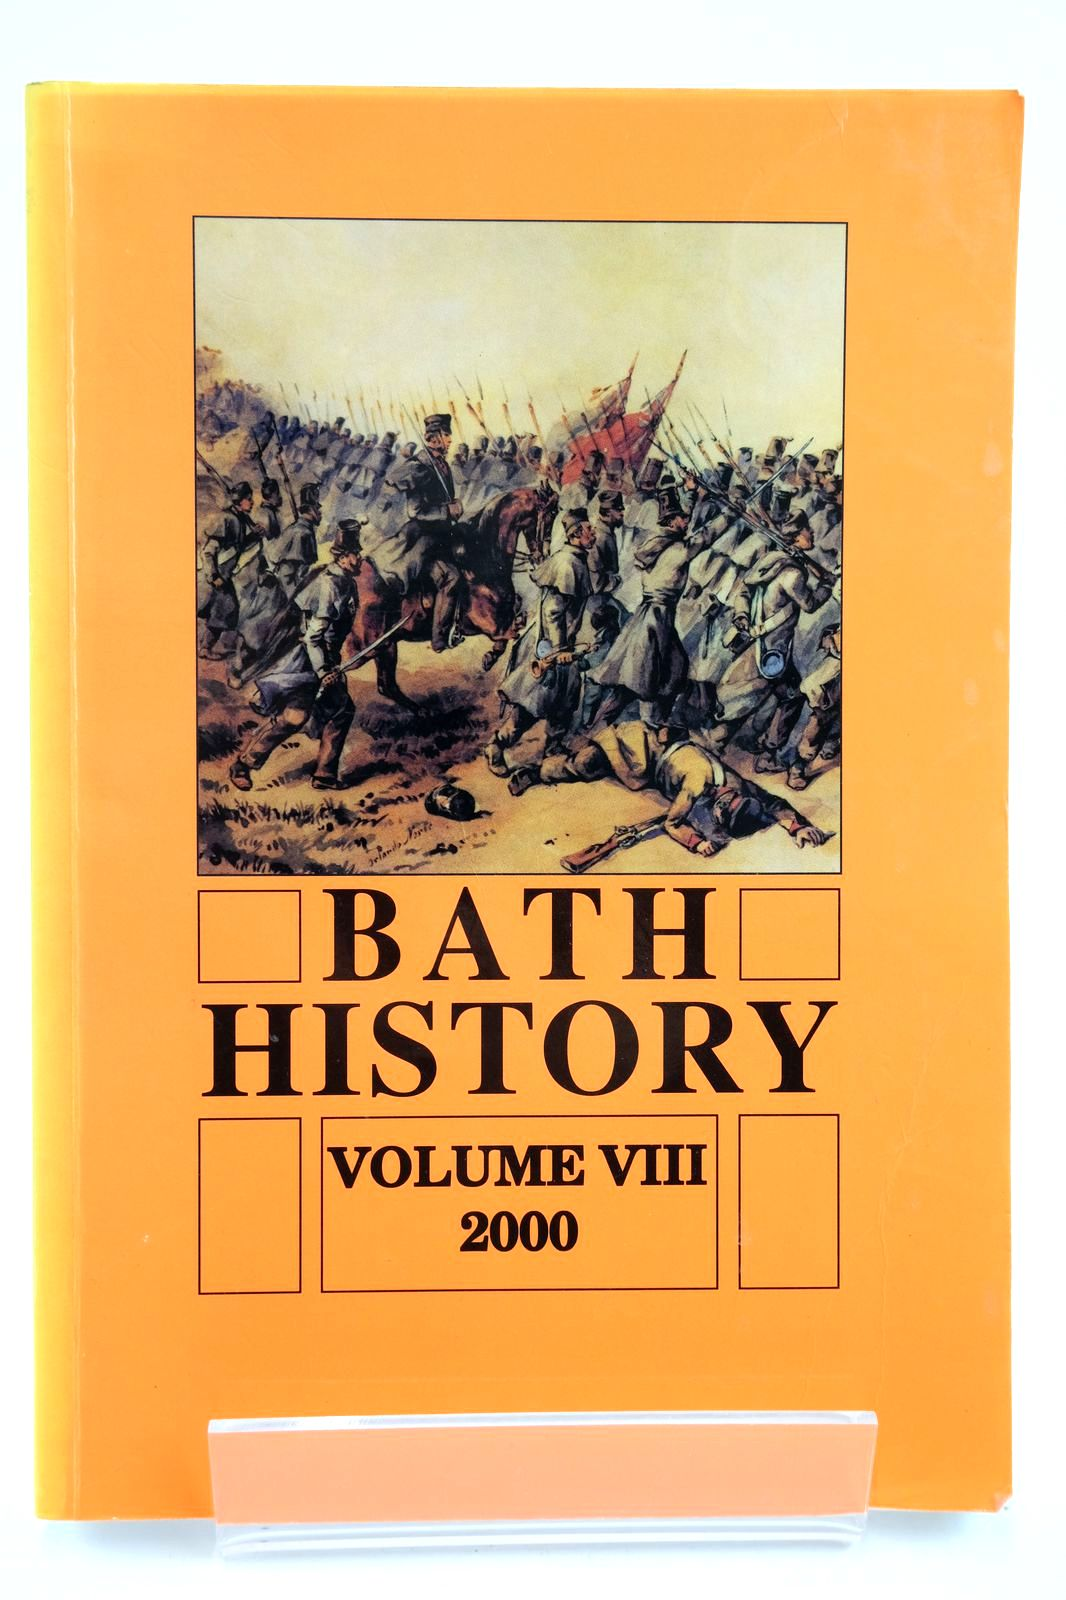 Photo of BATH HISTORY VOLUME VIII written by Buchanan, Brenda J. et al, published by Millstream Books (STOCK CODE: 2132572)  for sale by Stella & Rose's Books